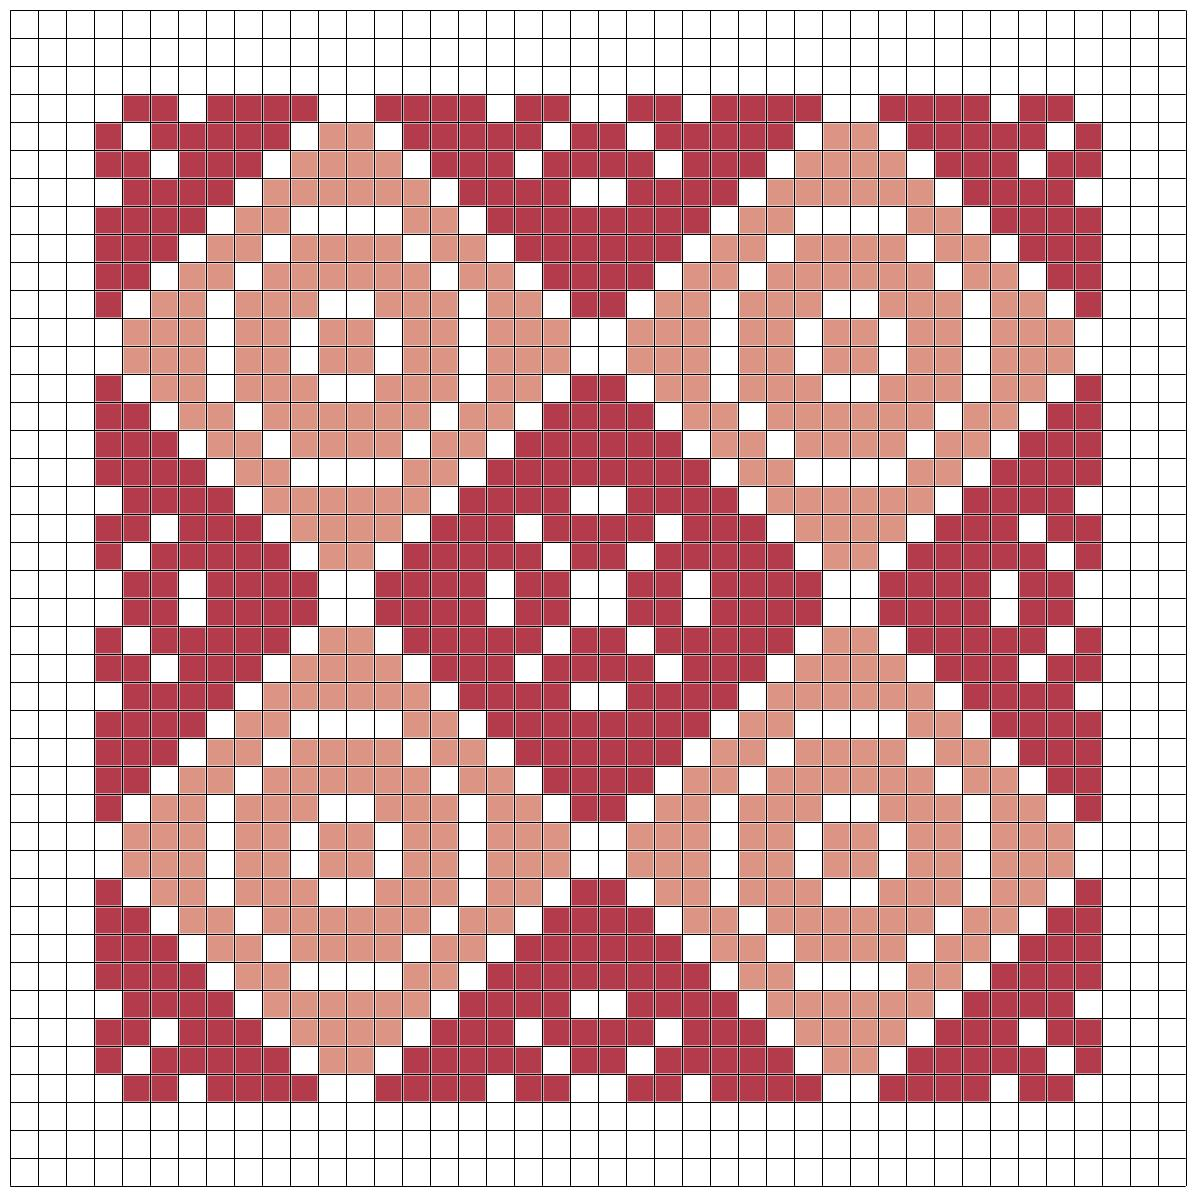 Quilting Patterns Stitching : The world according to agi: Geometric quilt cross stitch pattern